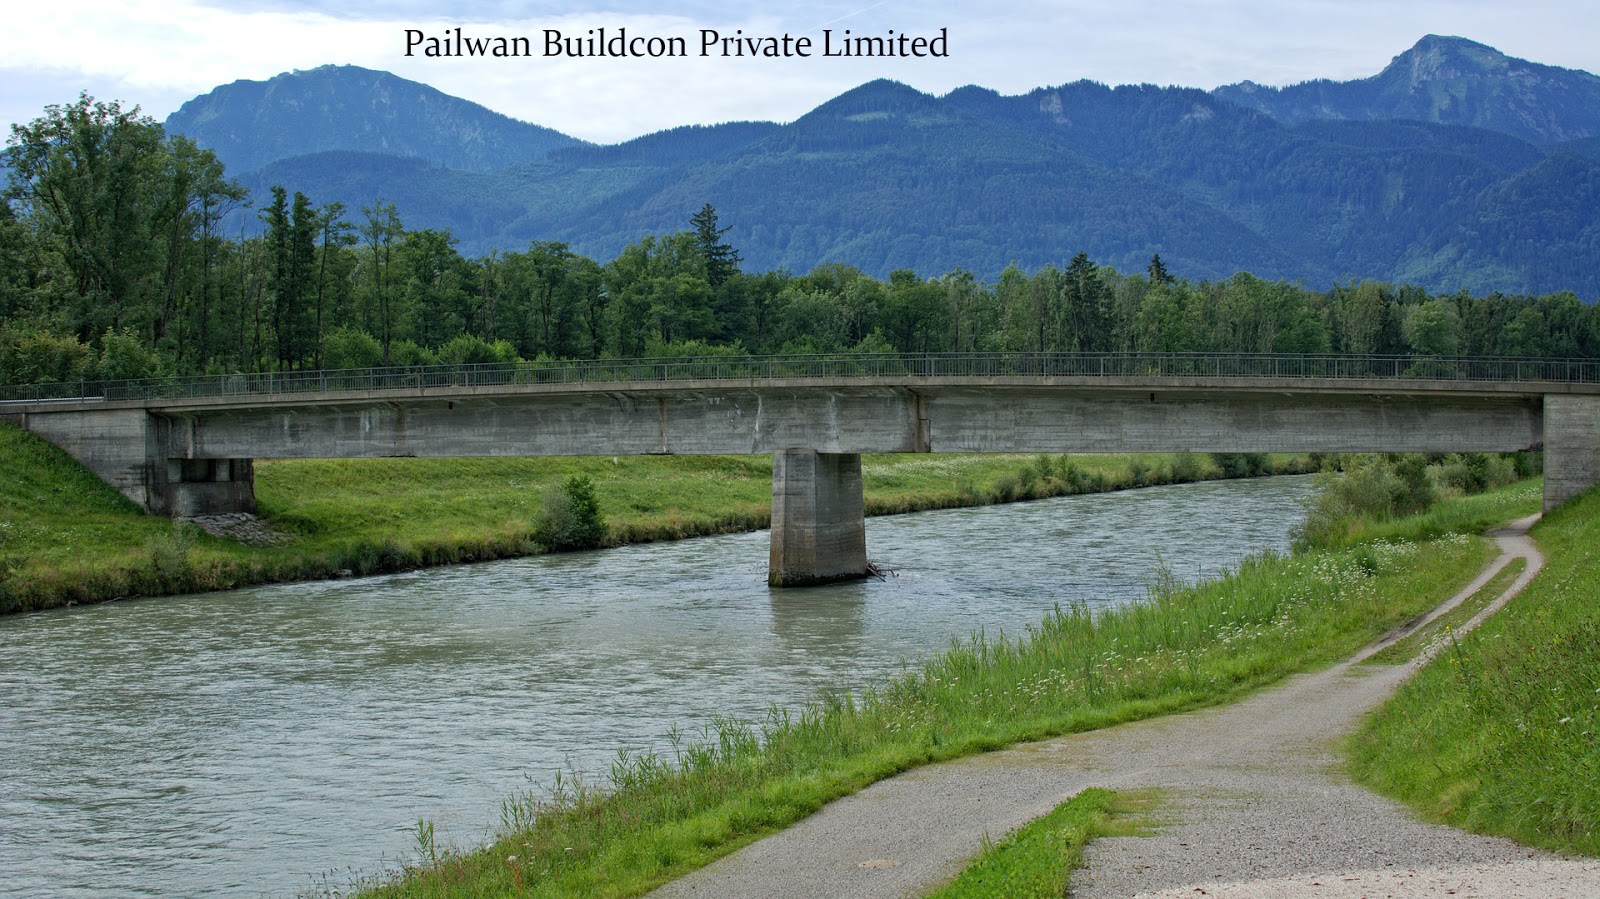 Services of Pailwan Buildcon Private Limited , Best Road Construction Company in Jamakhandi Bagalkot Karnataka,Best Road Contractor in Jamakhandi Bagalkot Karnataka,Best Building Contractors in Jamakhandi Bagalkot Karnataka,Best Civil Contractors in Jamakhandi Bagalkot Karnataka,Best Contractors in Jamakhandi Bagalkot Karnataka,Best Excavating Service Company in Jamakhandi bagalkot Karnataka,Best General Contracting Company in Jamakhandi bagalkot Karnataka,Best Mine Development Company in Jamakhandi Bagalkot Karnataka,Best Water Lines Construction Company in Jamakhandi Bagalkot Karnataka,Best Sewer Lines Construction Company in Jamakhandi Bagalkot Karnataka,Best Logging Service Company in Jamakhandi Bagalkot Karnataka,Best Logging Service Company in Jamakhandi Bagalkot Karnataka,Best Drilling and Blasting Service Company in Jamakhandi Bagalkot Karnataka,Best Clearing and Hauling Service Company in Jamakhandi Bagalkot Karnataka,Best Envirocleanup  Service Company in Jamakhandi Bagalkot Karnataka, contractors in Karnataka, road contractors in Karnataka, civil contractors in Karnataka, civil contractors in bagalkot, civil contractors in jamakhandi, civil contractors in athani, civil contractors in near me, road construction contractors in Karnataka, road construction contractors in jamakhandi, road construction contractors in bahalkot, road construction contractors in bijapur, road construction contractors in athani, top contractors in Karnataka, top contractors in jamakhandi, top contractors in bagalkot, top contractors in athani, top civil contractors in jamakhandi, top civil contractors in belagavi, top civil contractors in athani,  water supply contractors in Karnataka, water supply contractors in jamakhandi,  water supply contractors in bagalkot, waterproofing contractors in jamakhandi, waterproofing contractors in Karnataka, waterproofing contractors, road building materials, road building equipments, road building equipments for rent, road building equipments in